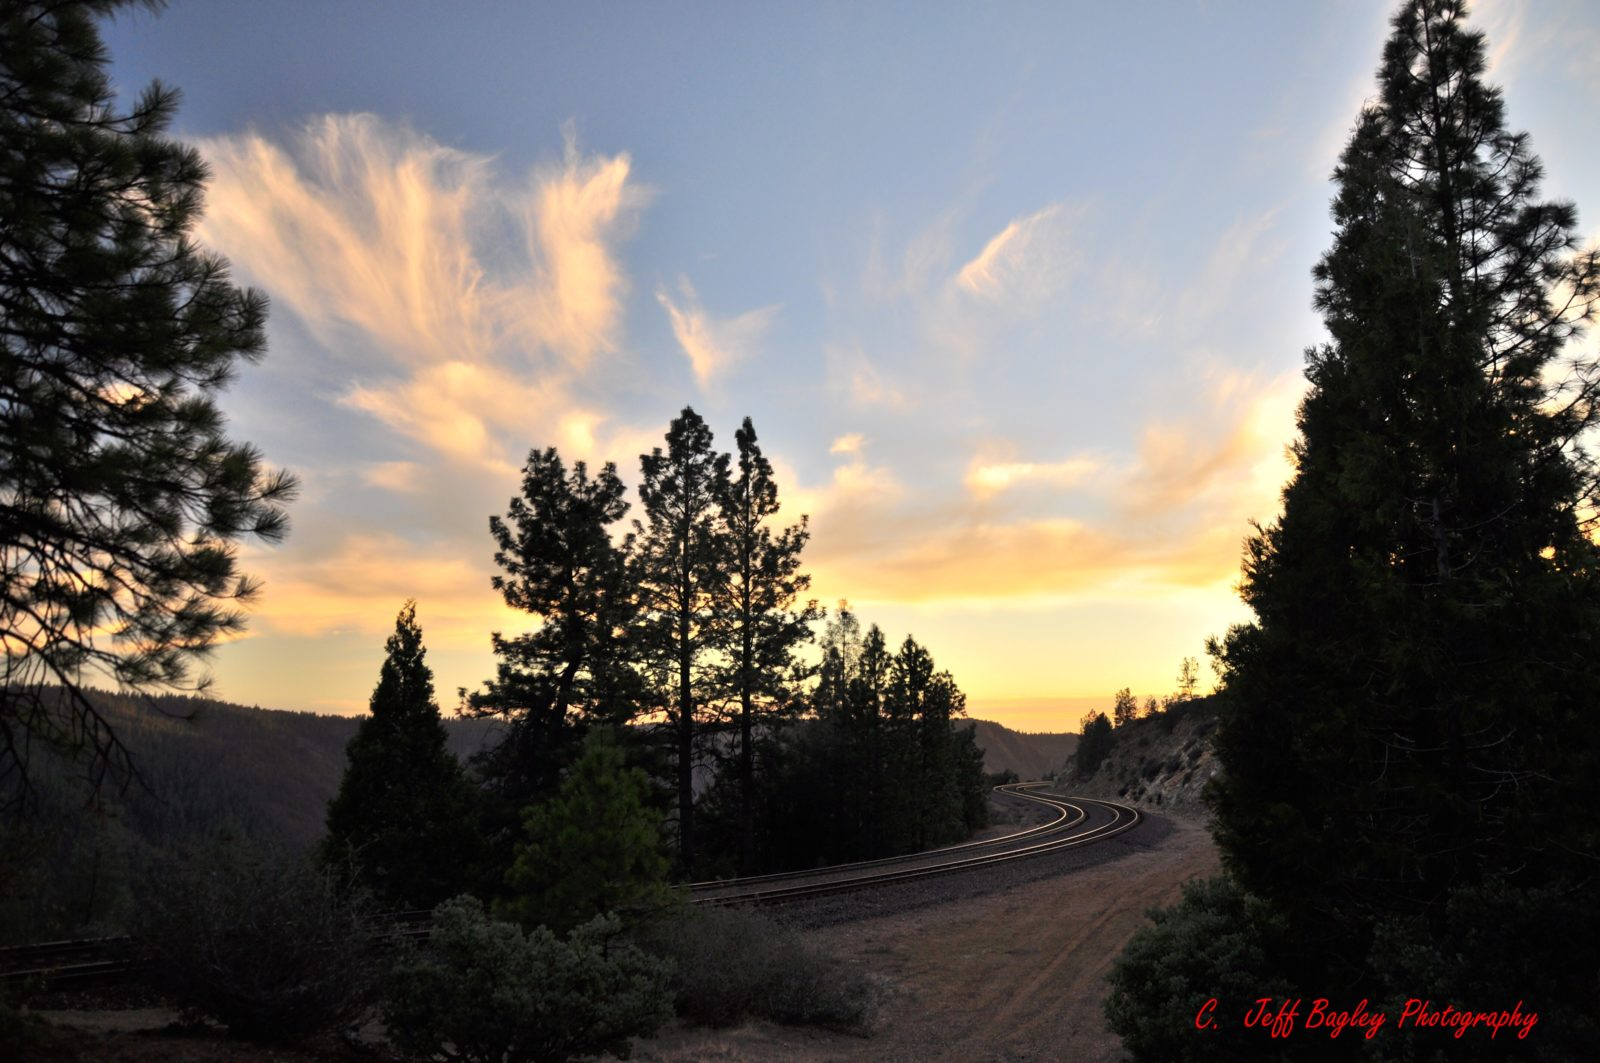 Sunset and Railroad tracks at Casa Loma, CA